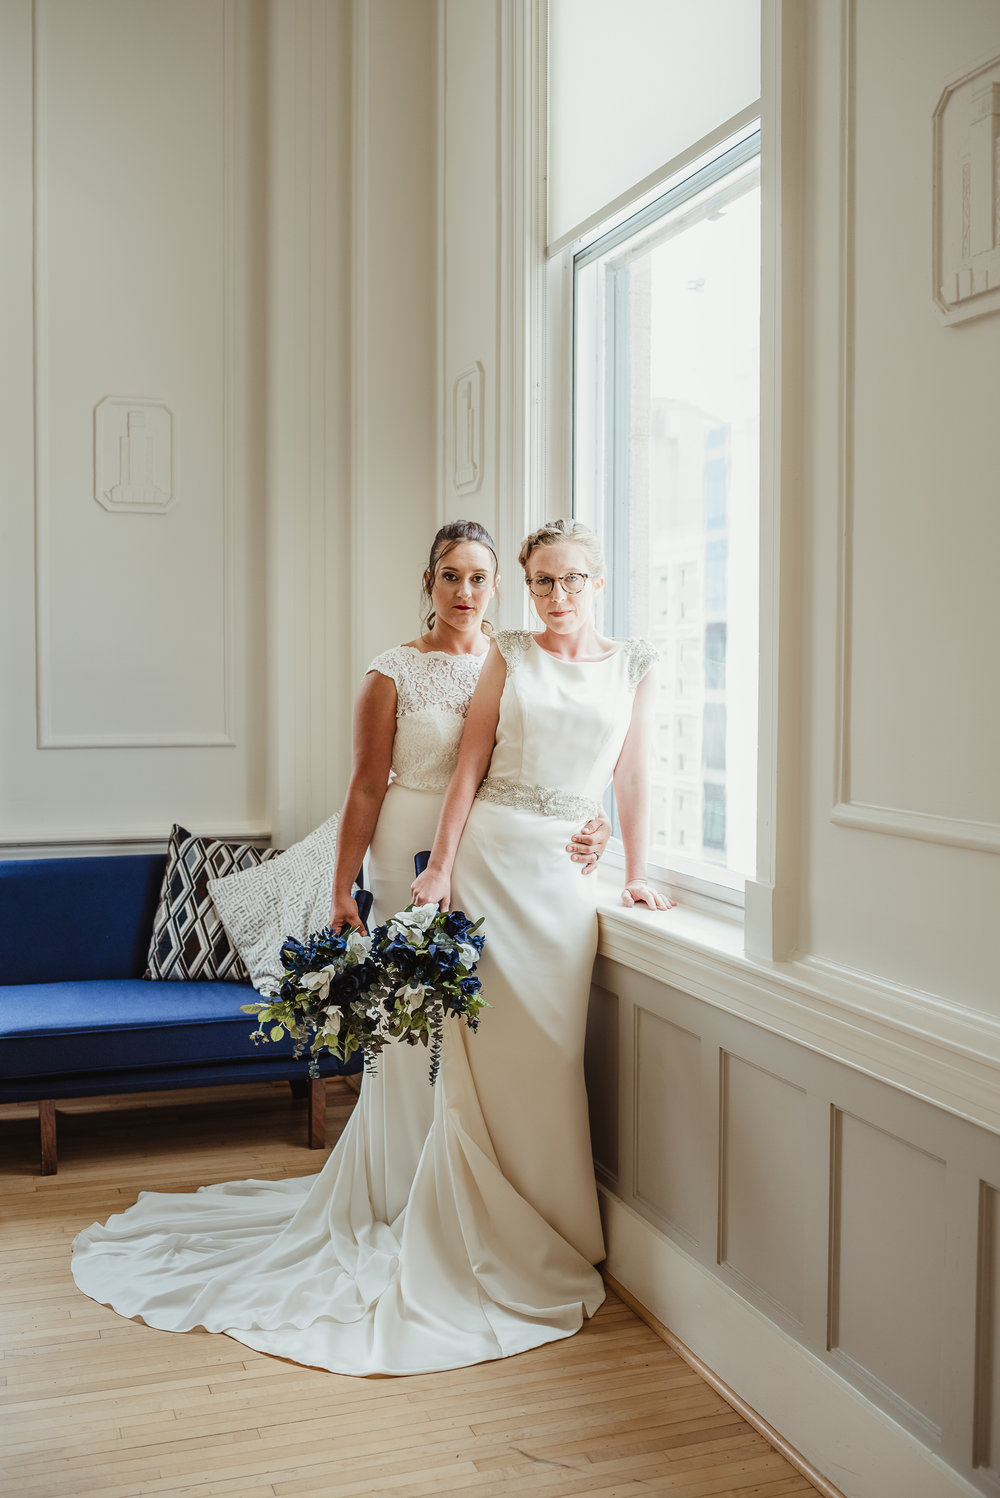 Two-Beautiful-Brides-Maggi-Bridal-Rose-Trail-Images-Rowan-Lane-Events-Cannon-Room-Raleigh-Blissful-Celebrations.jpg